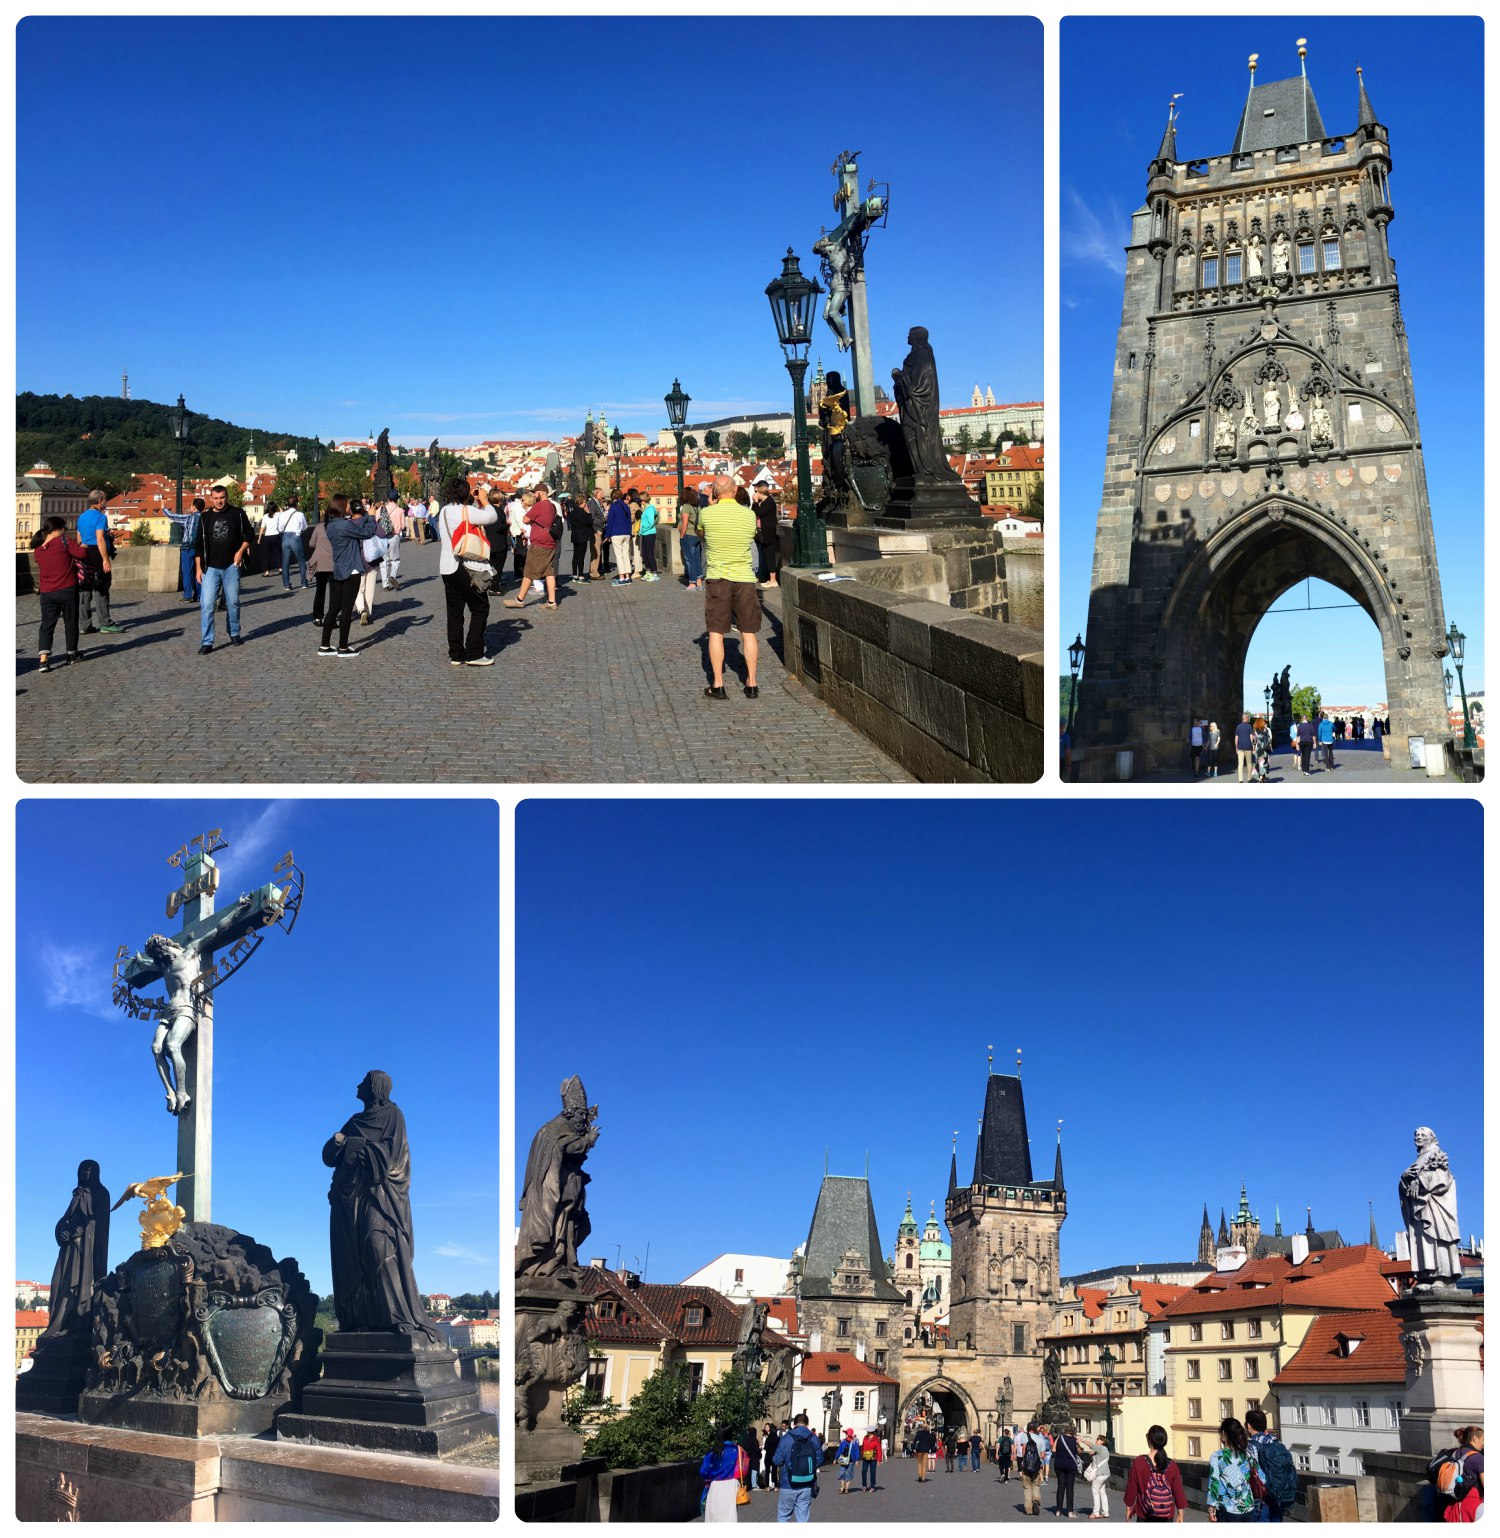 The detail and sculptures of the bridge are beautiful, so it's no surprise that St. Charles Bridge is an extremely popular tourist spot in Prague.